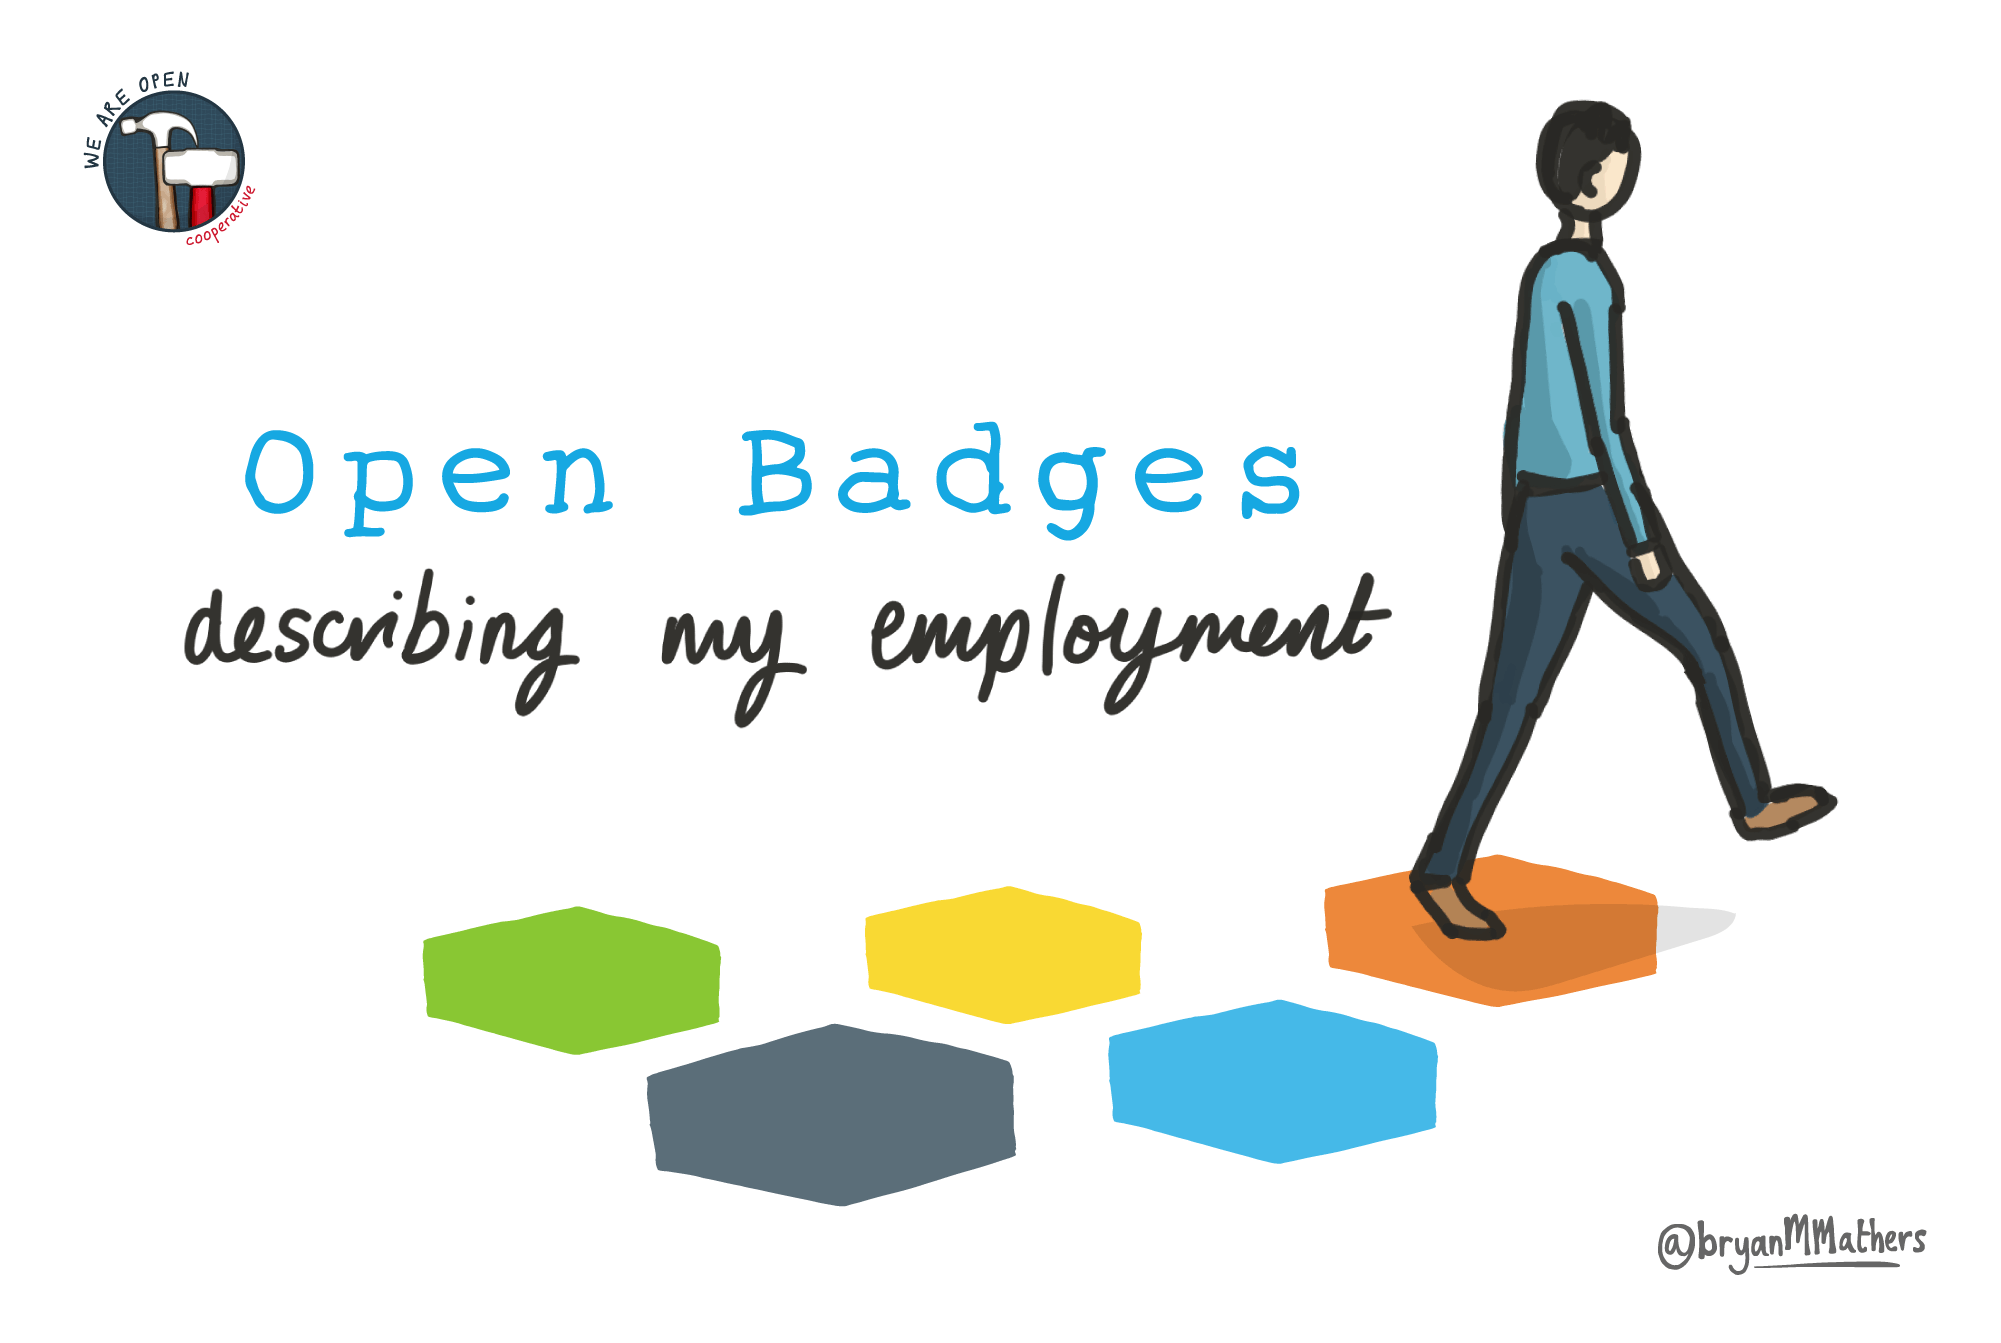 Open Badges: describing my employment